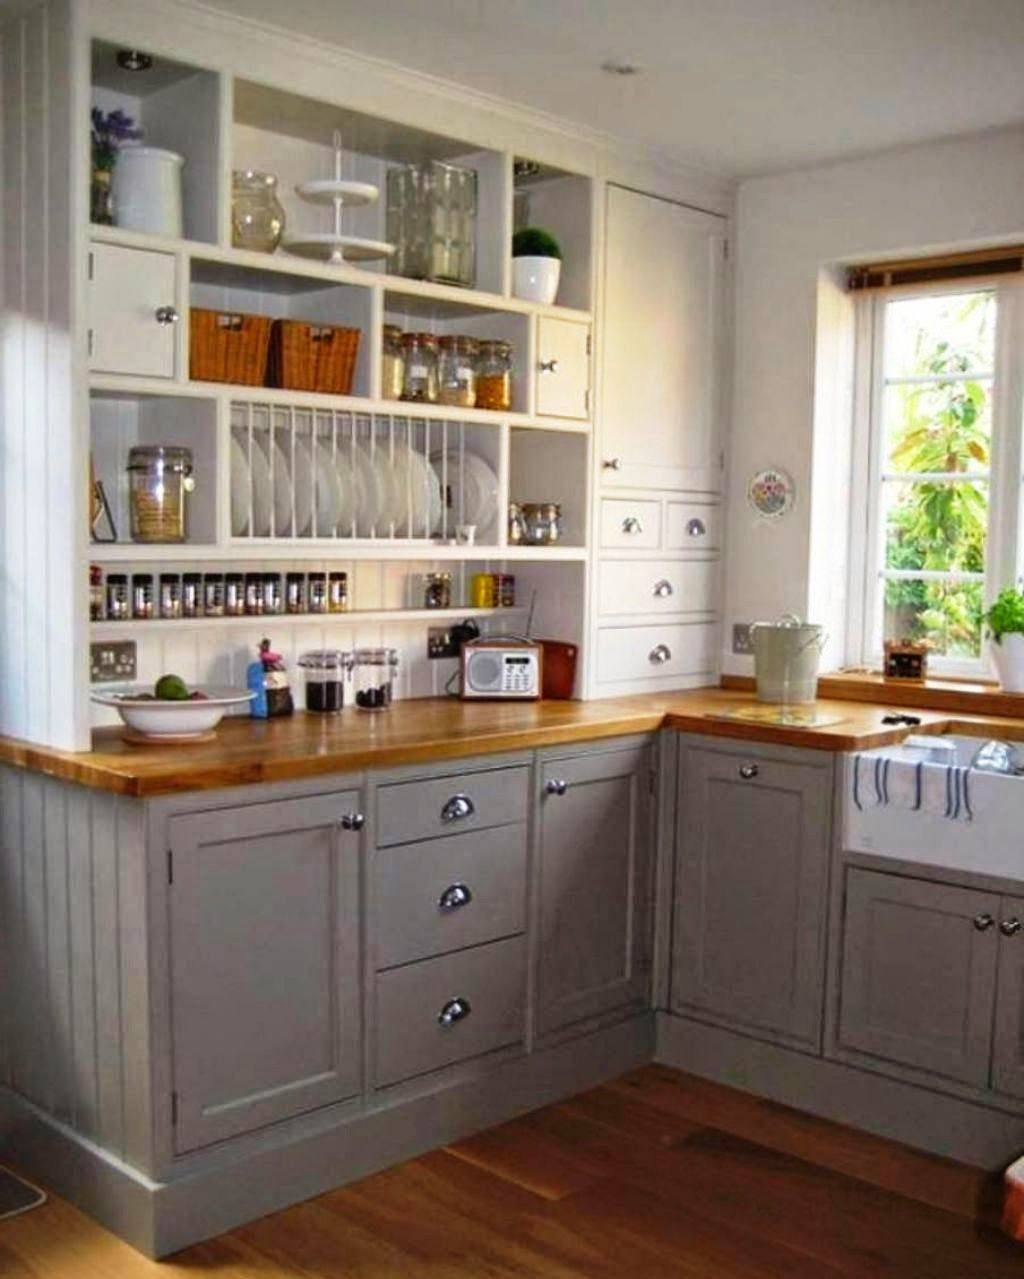 Kitchen organization for tight spaces ideas for home - Doors for tight spaces ...